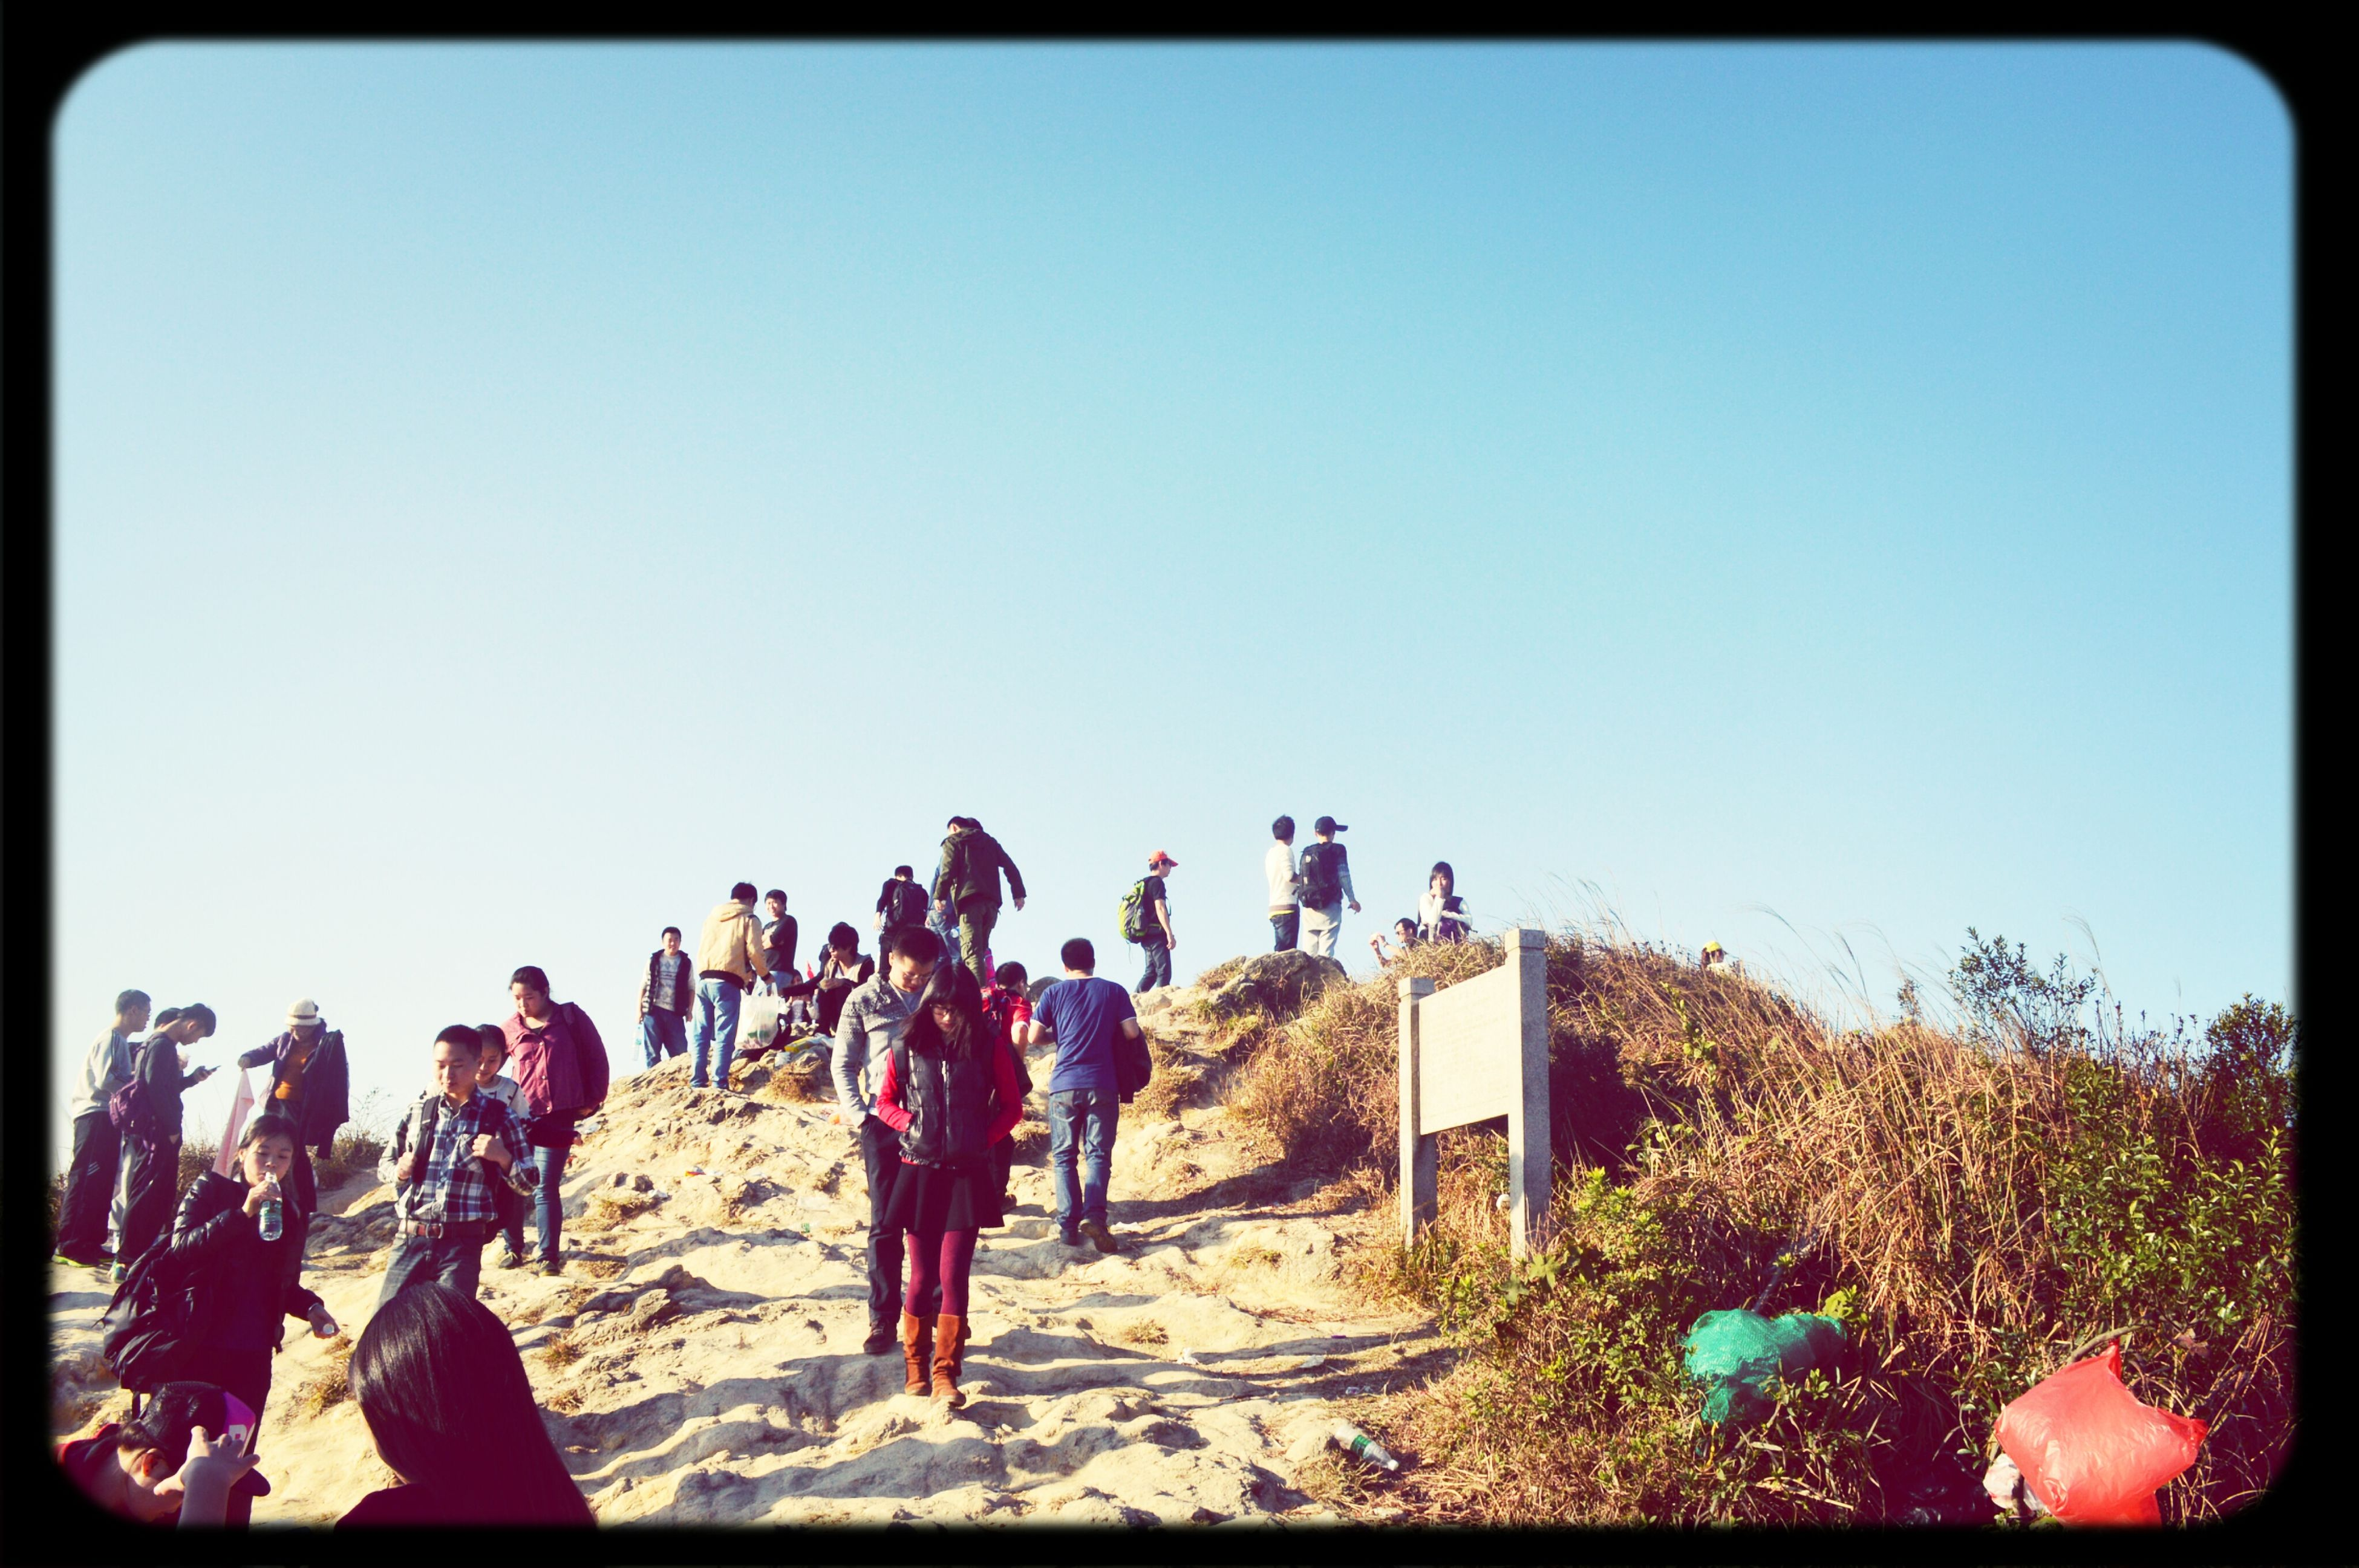 clear sky, large group of people, men, lifestyles, copy space, leisure activity, person, transfer print, mixed age range, walking, auto post production filter, togetherness, enjoyment, tourist, blue, full length, vacations, group of people, medium group of people